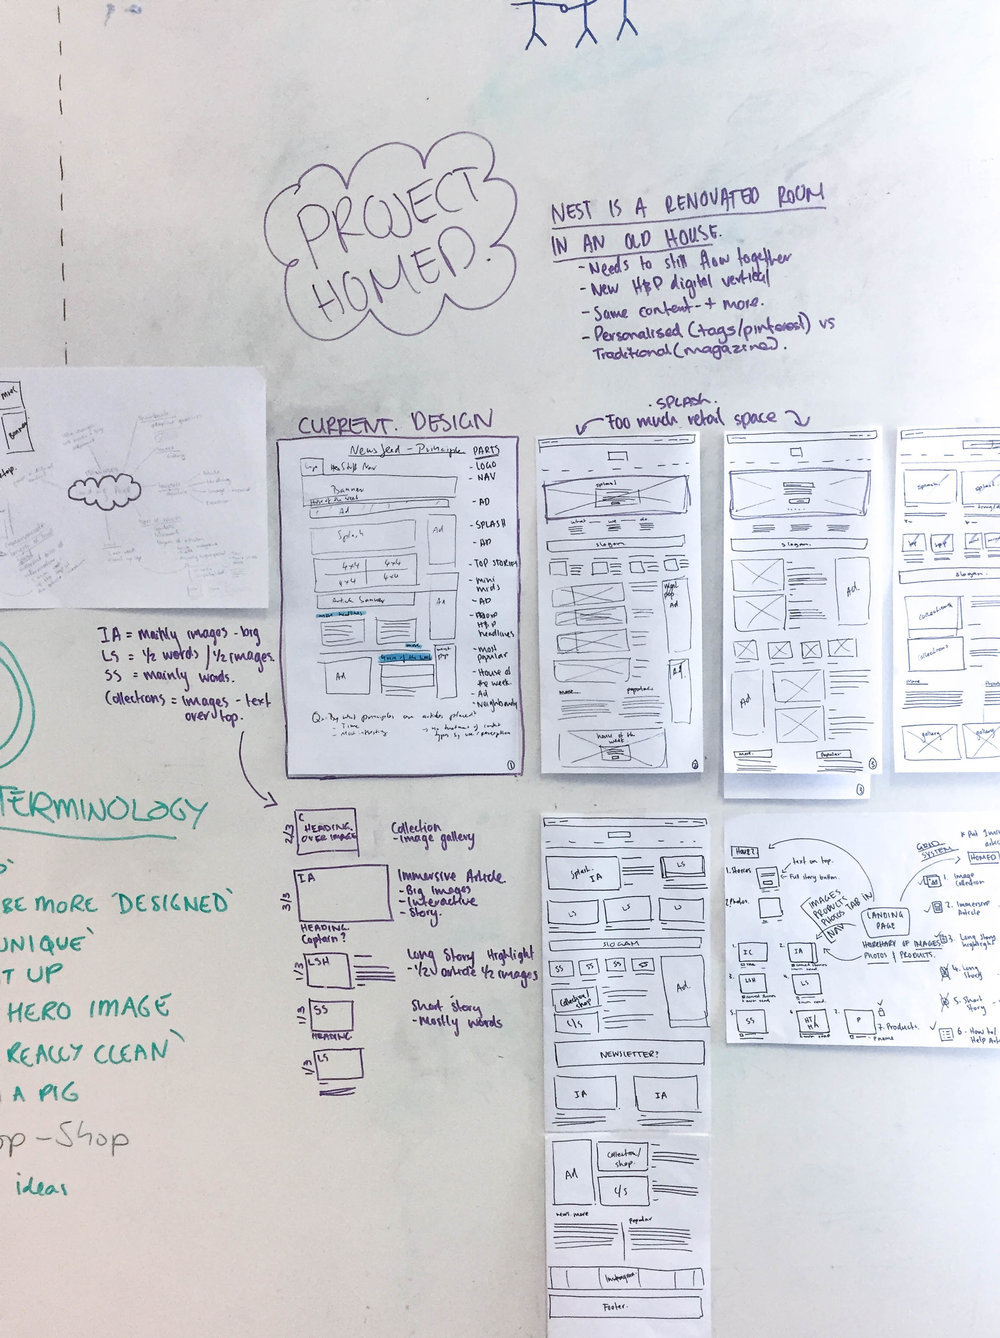 Wireframing for Homed